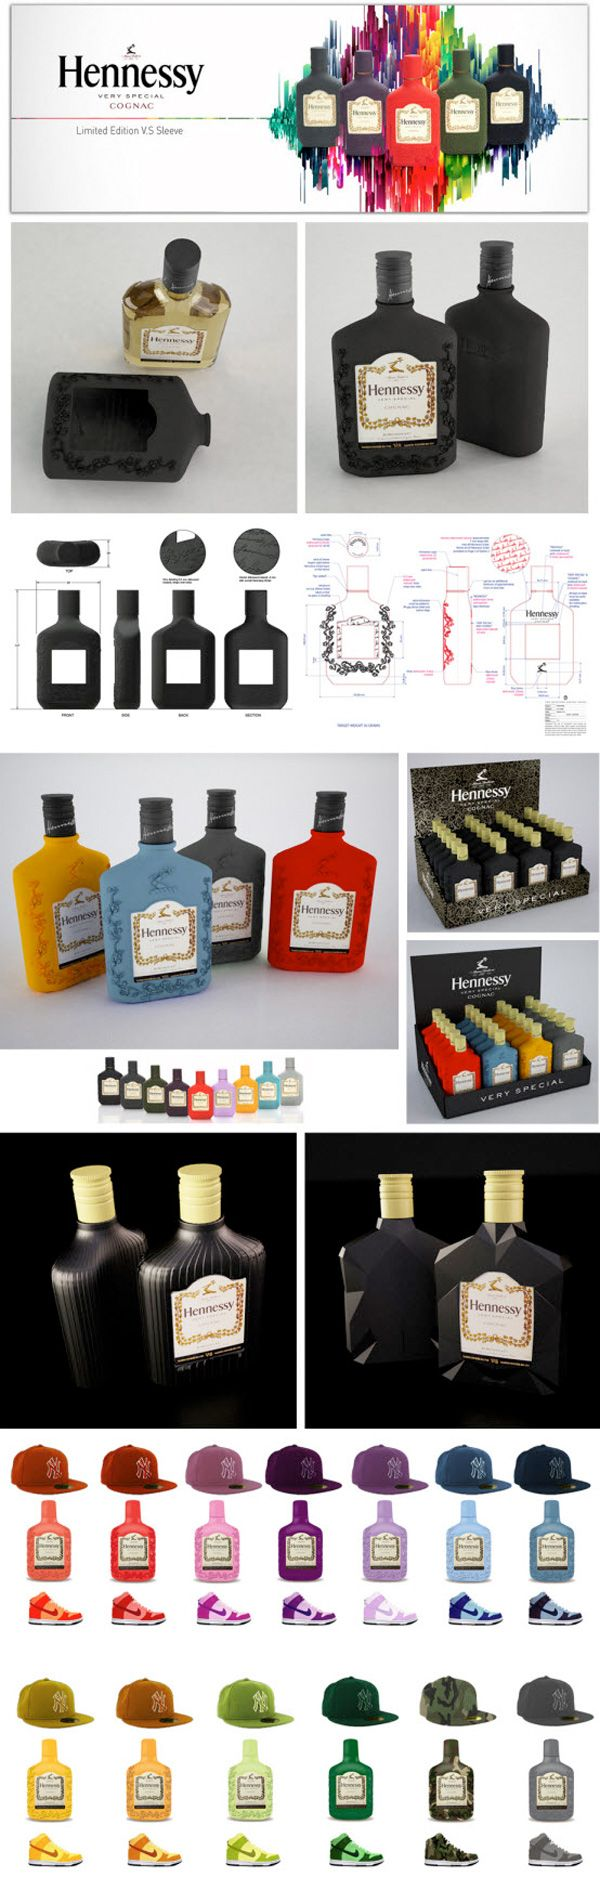 Hennessy very special flask colors your world #packaging PD